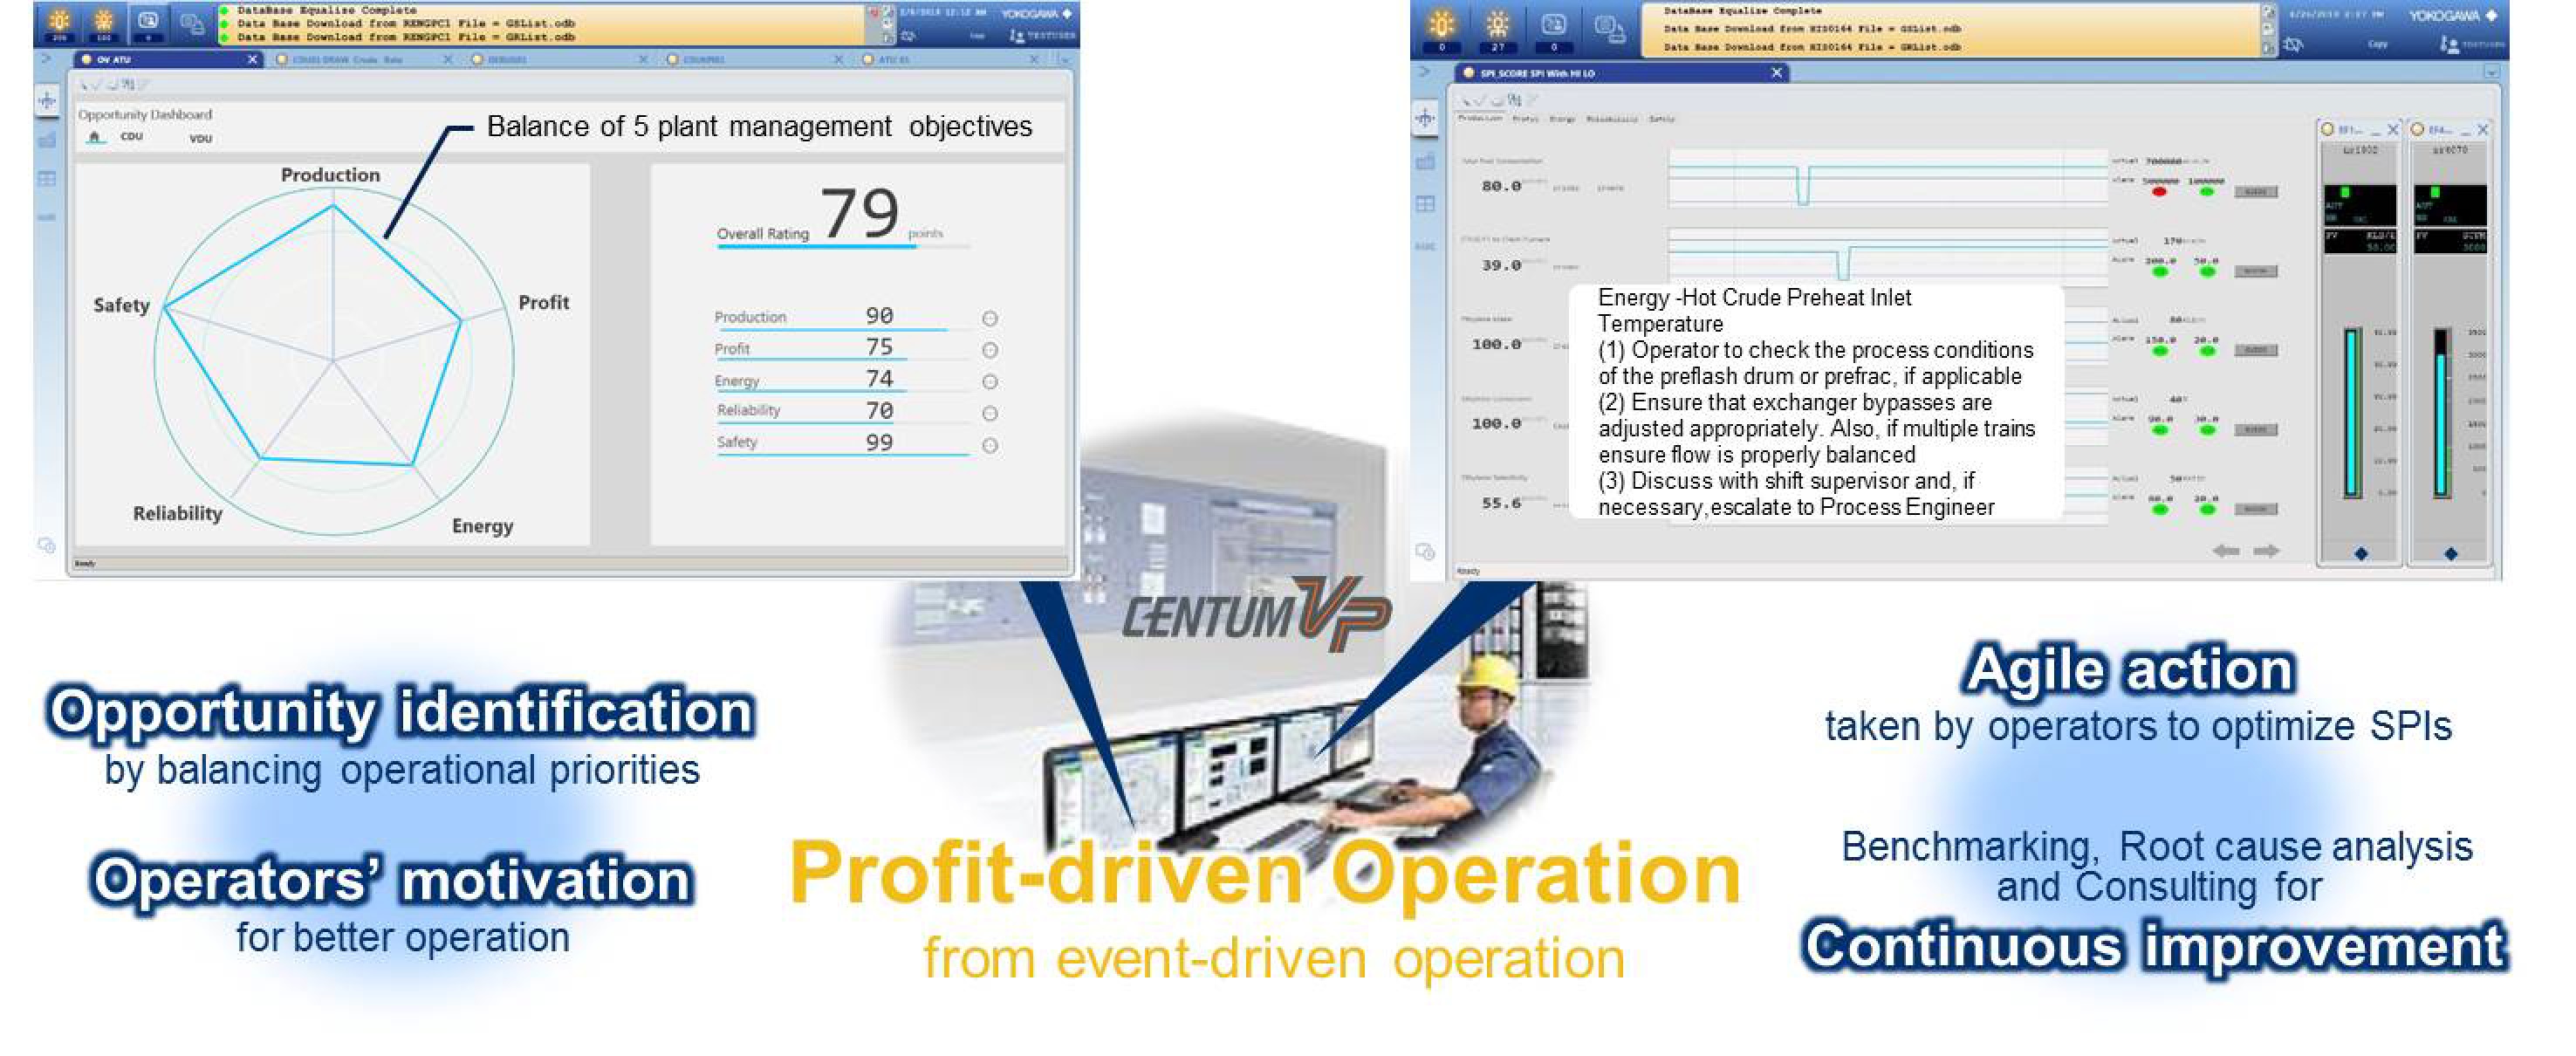 Oprex profit-driven operation, SPI dashboard, expert advice